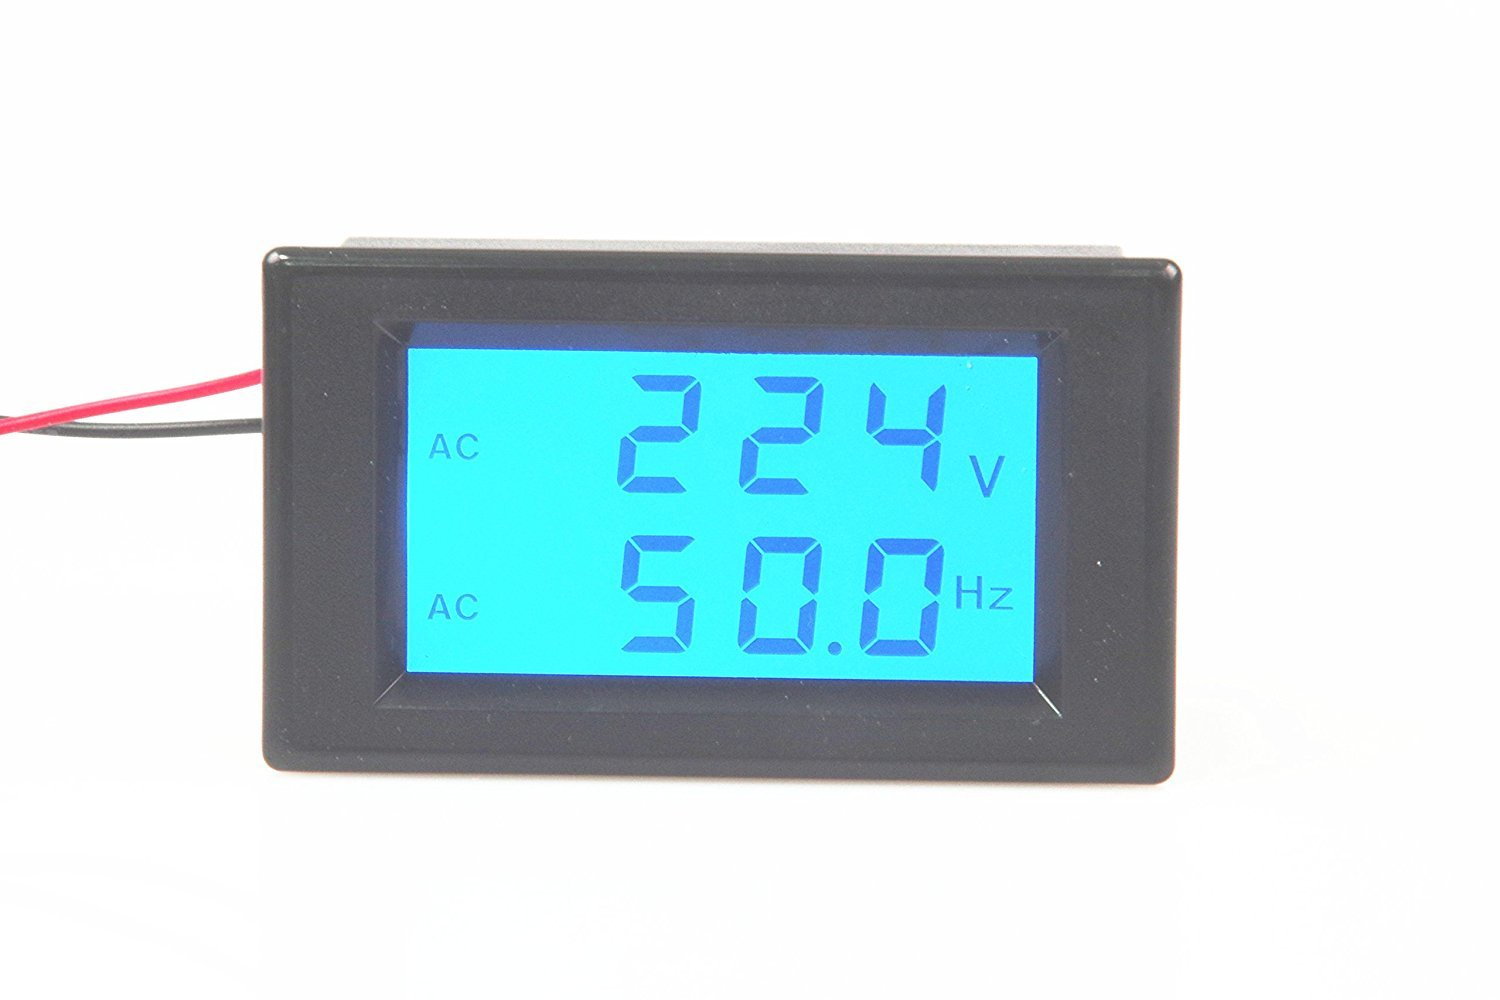 Digital AC Voltmeter AC80-300V Frequency Counter 45.0-65.0HZ LCD Display Voltage Frequency 2 in 1 Meter Tester